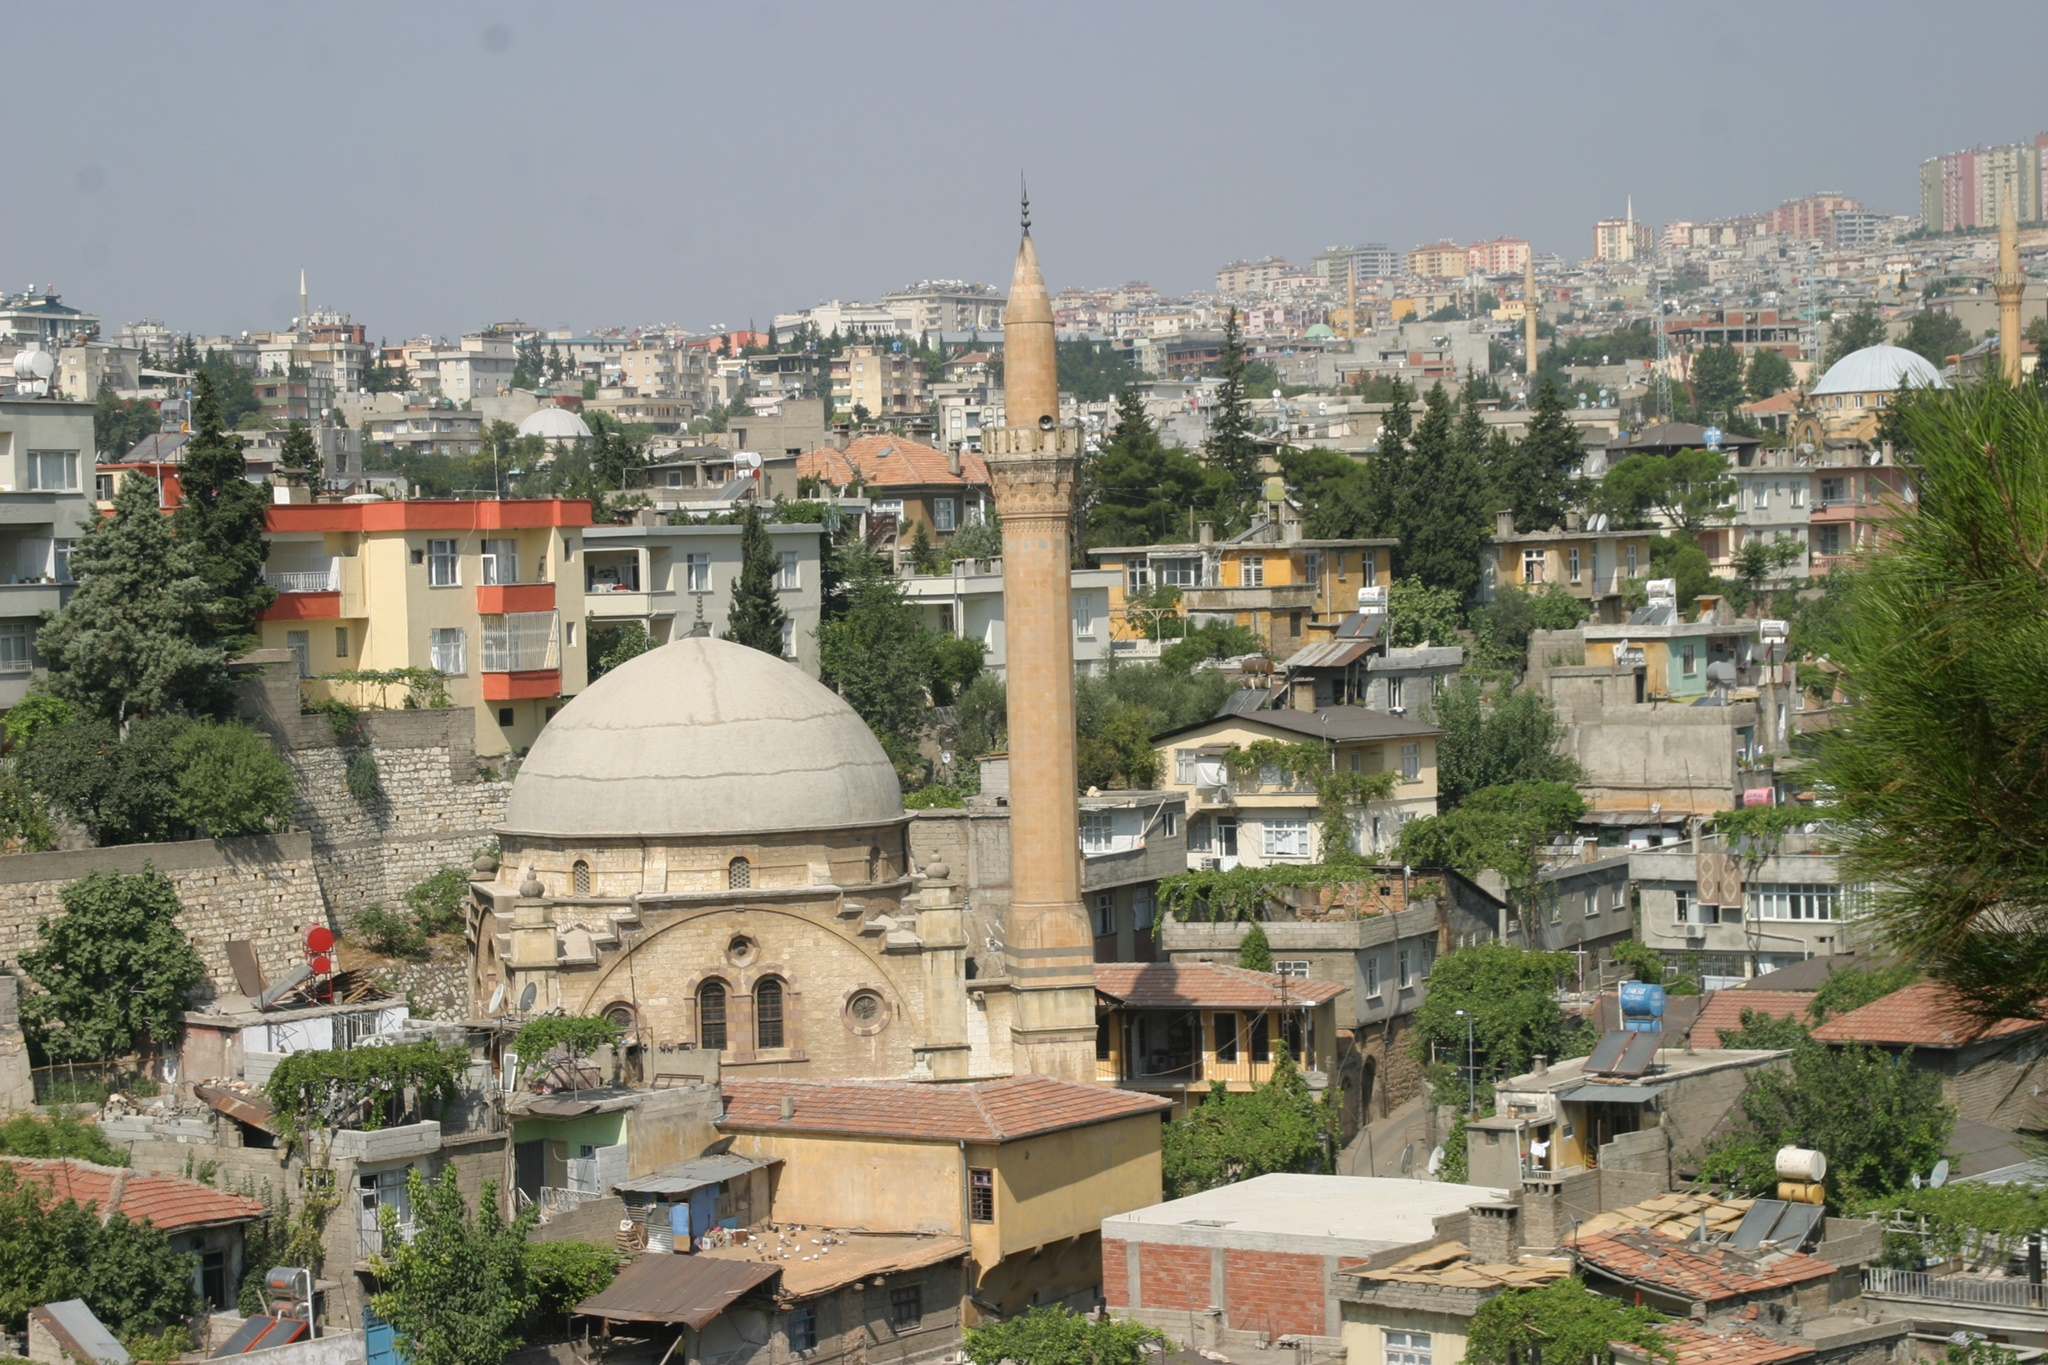 Skender bey acemli mosque kahramanmara city guide built in the district of ehit evliya in 1668 from the beyaztolular period by skender bey the iskender bey mosque was demolished and replaced by the thecheapjerseys Images